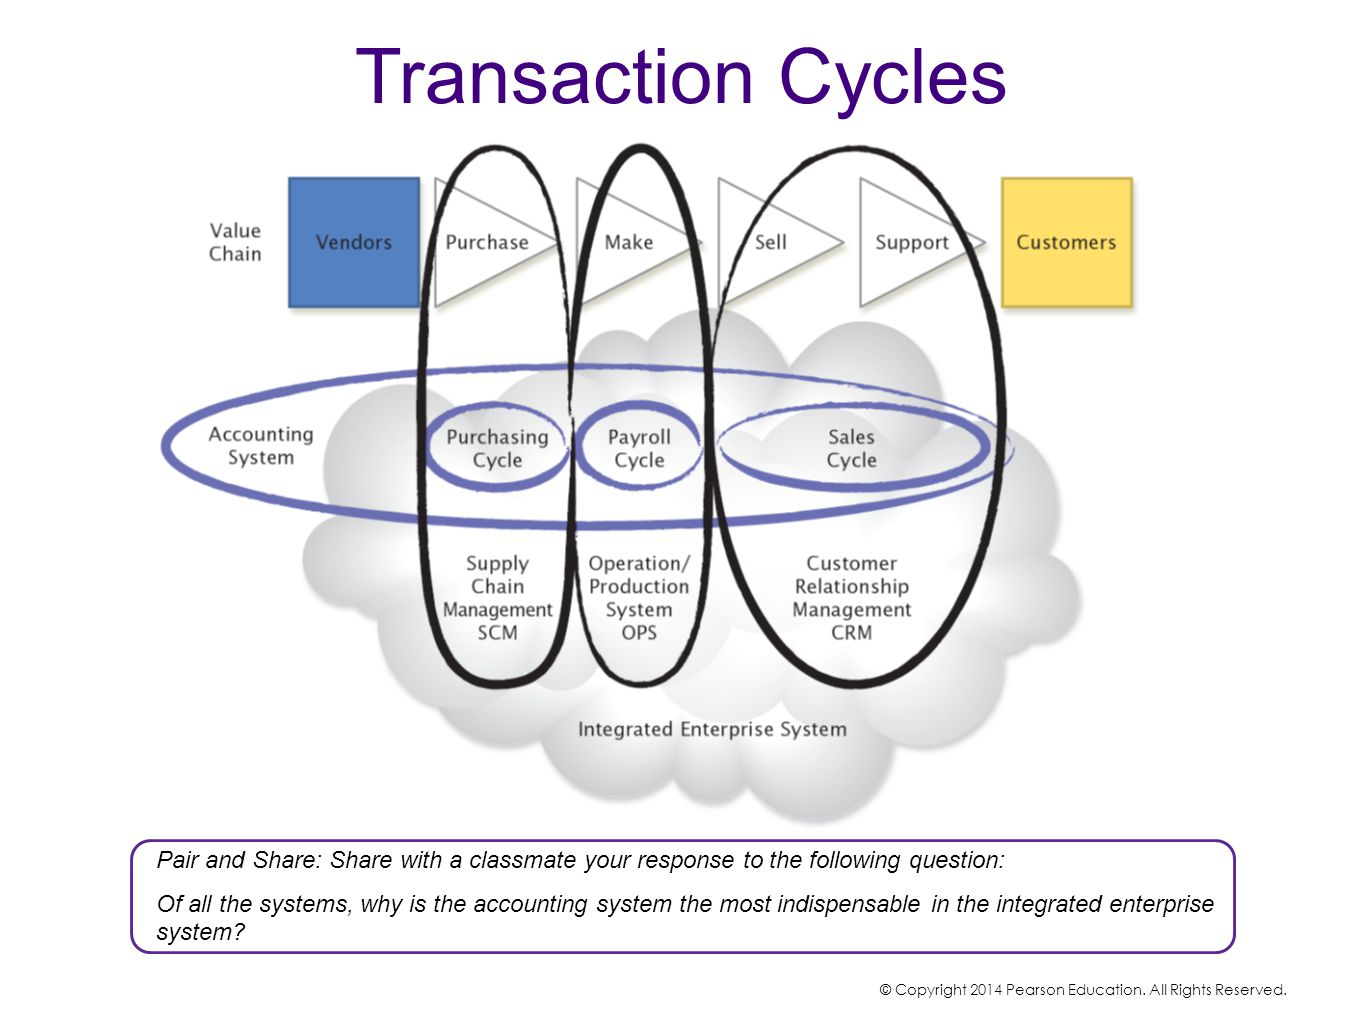 Transaction Cycles